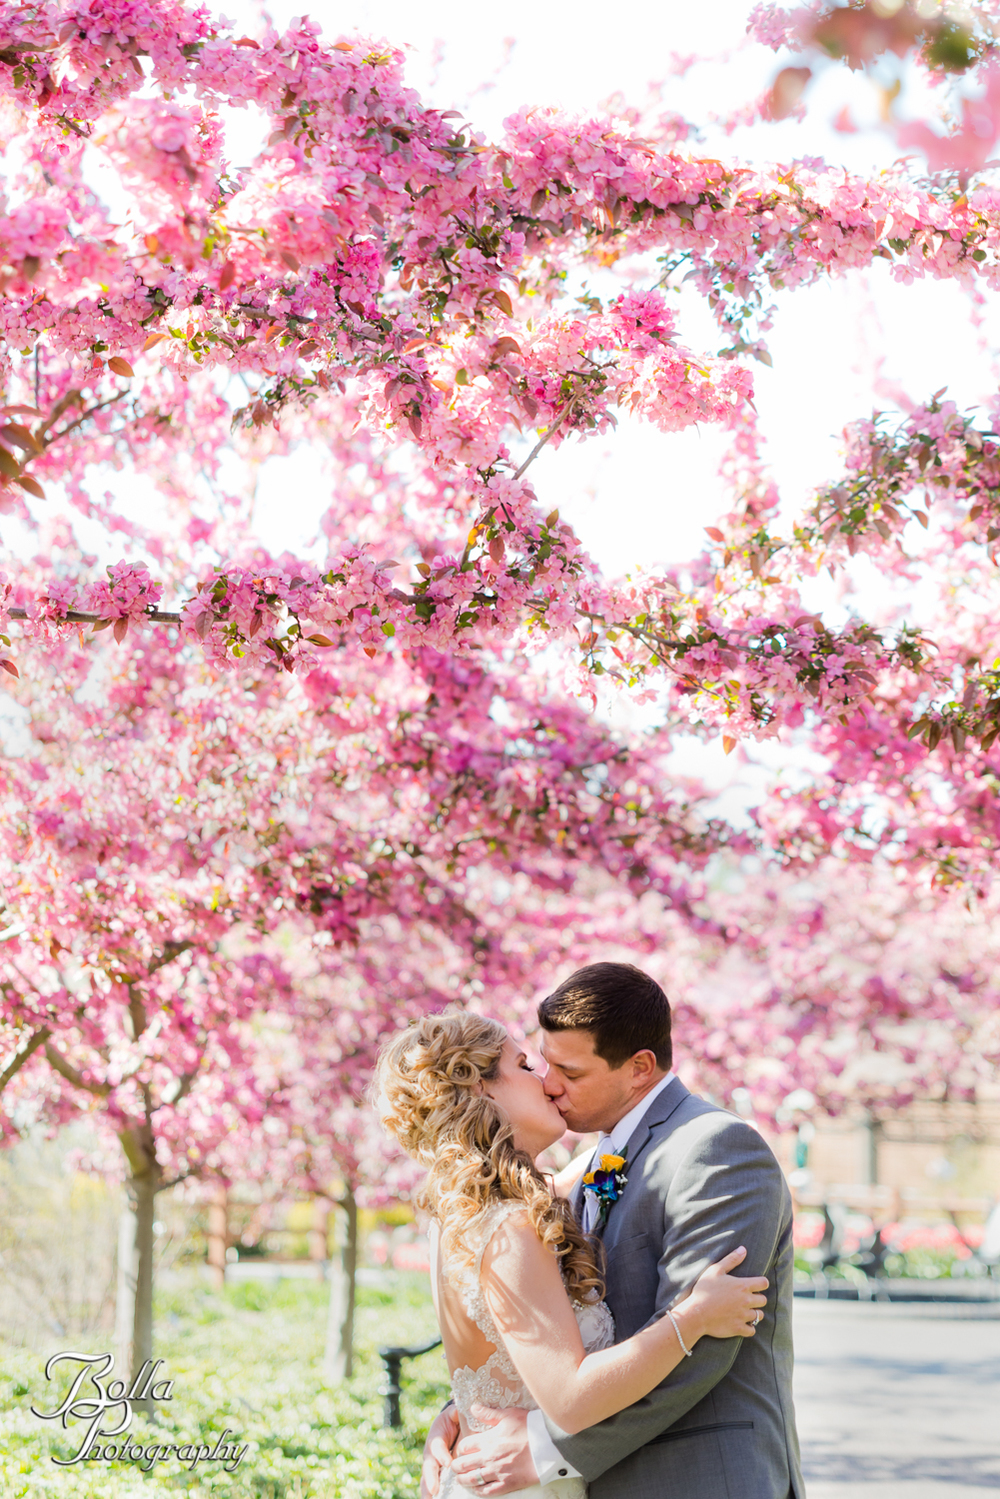 Bolla_Photography_St_Louis_wedding_photographer_Morgando_Blues_hockey_Botanical_Gardens_spring-0001.jpg